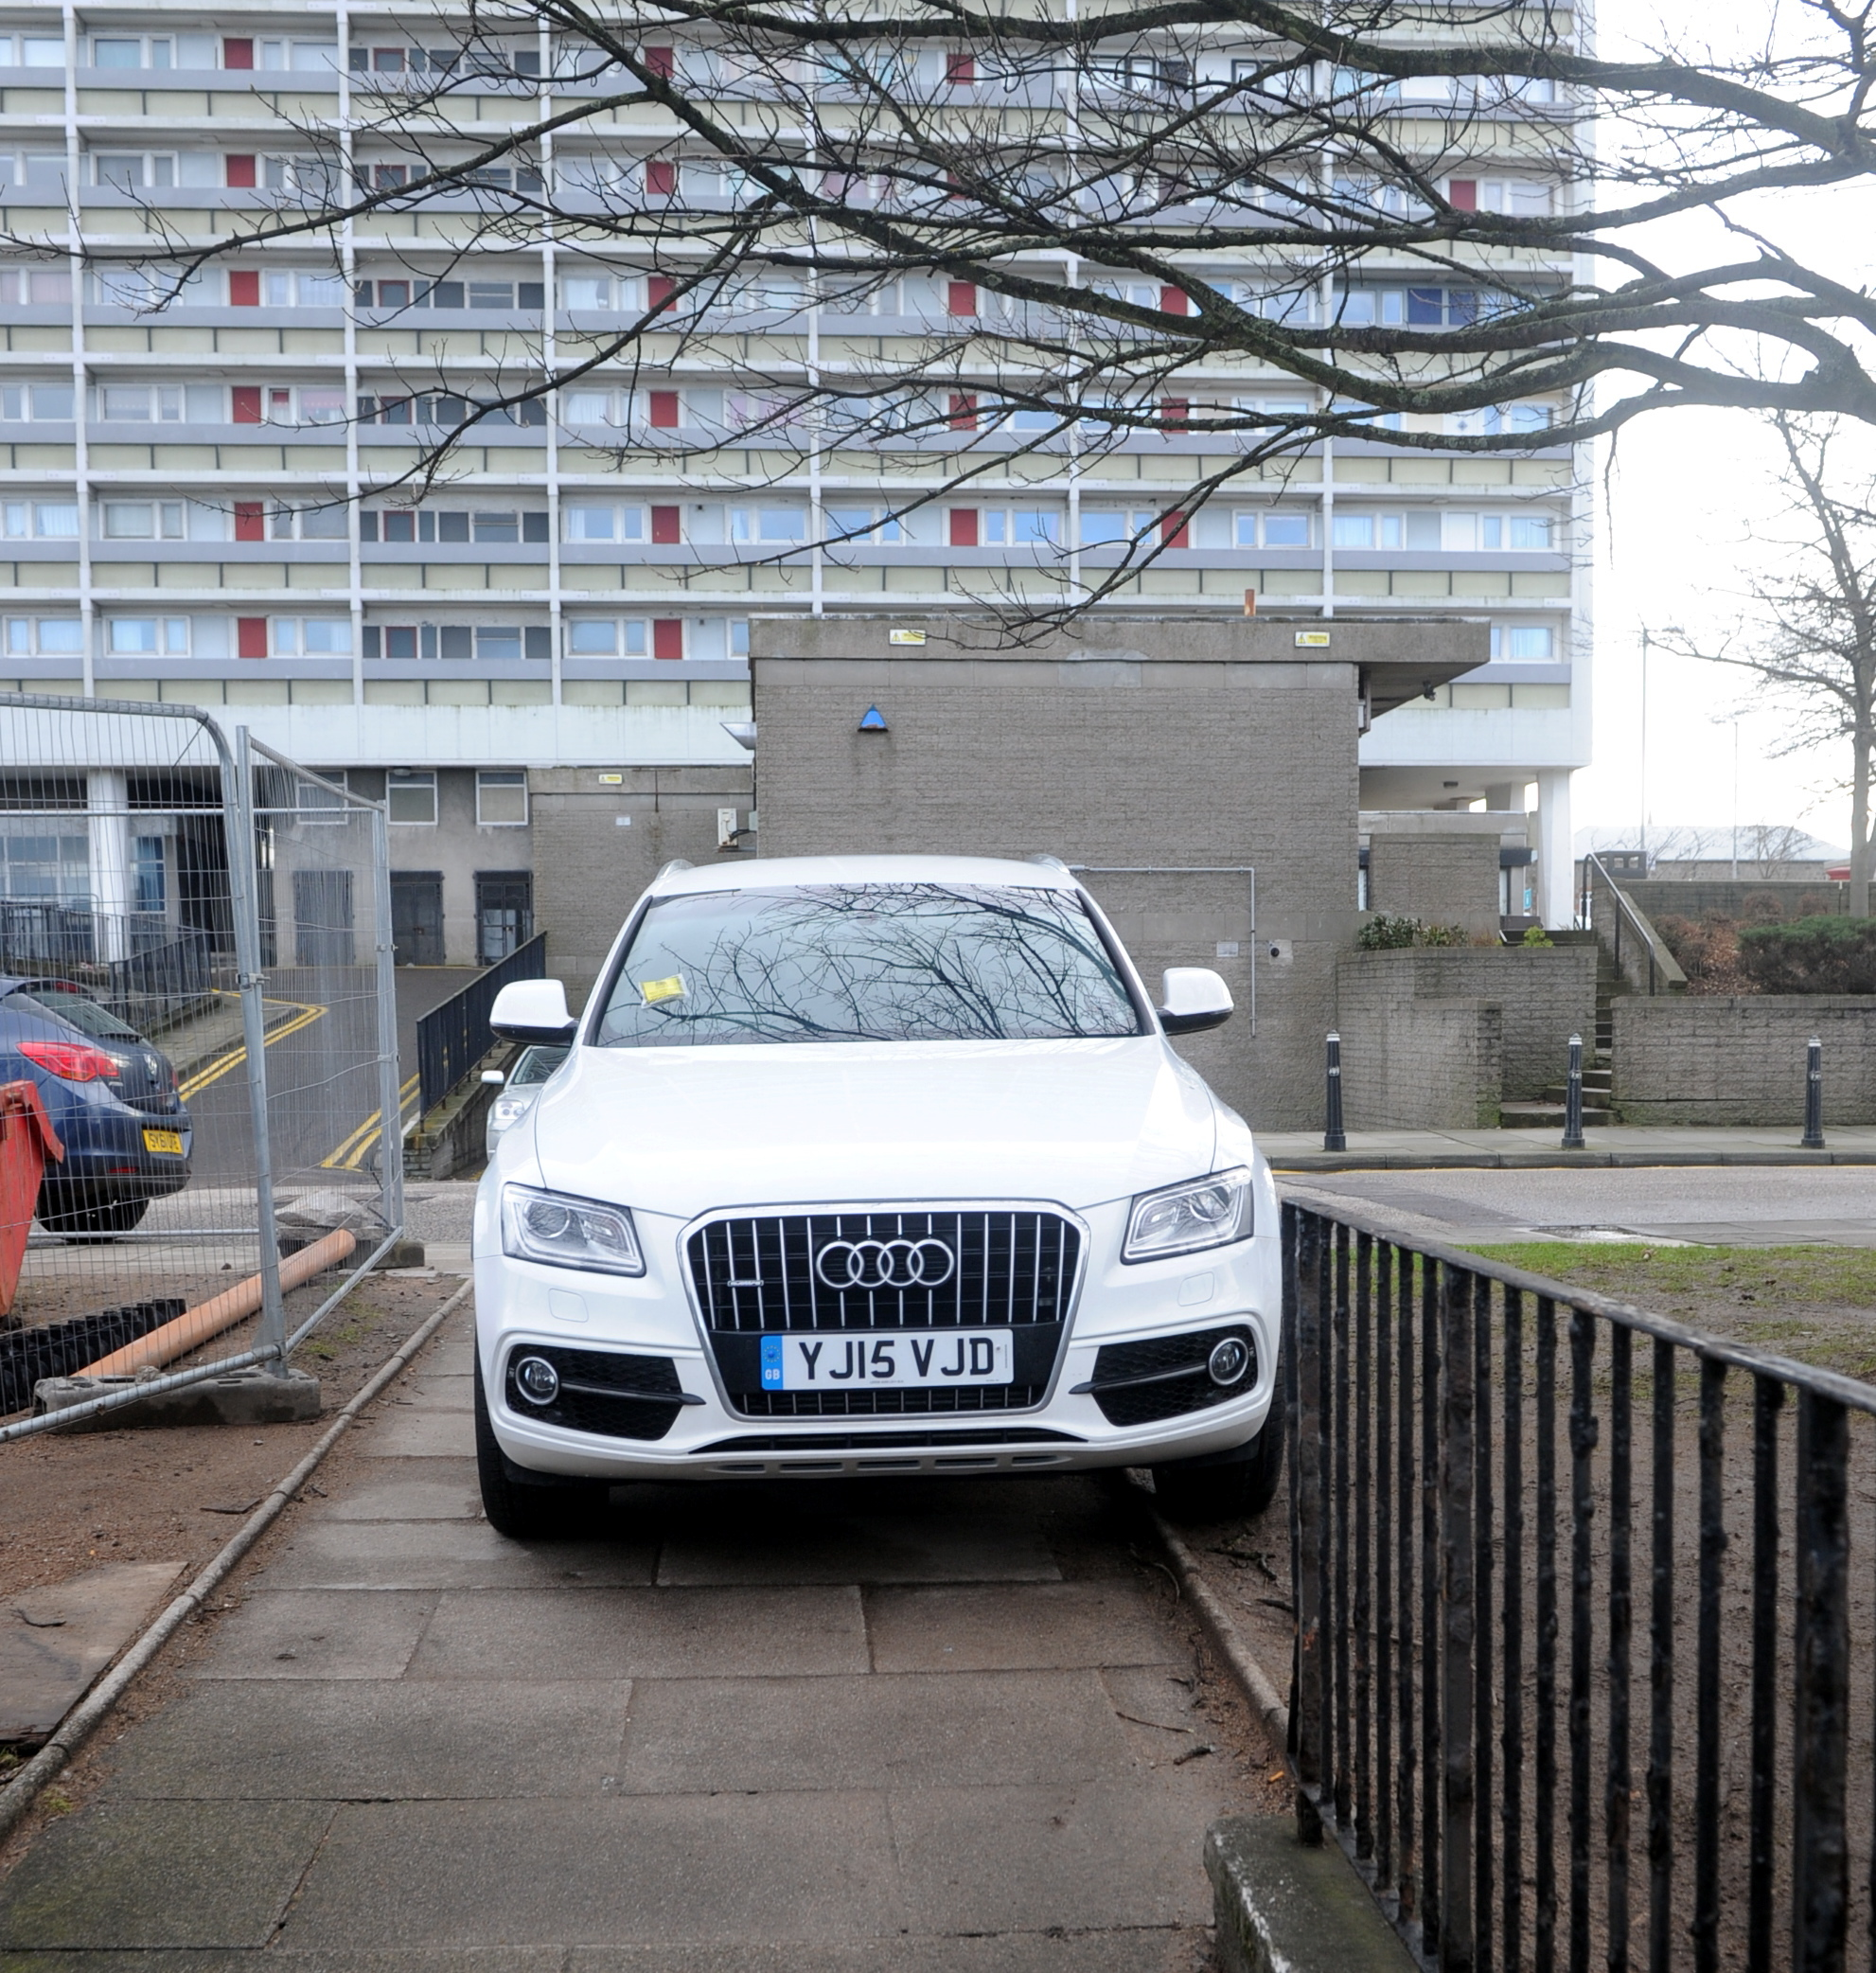 Legislation has been brought forward to stop people parking on pavements.